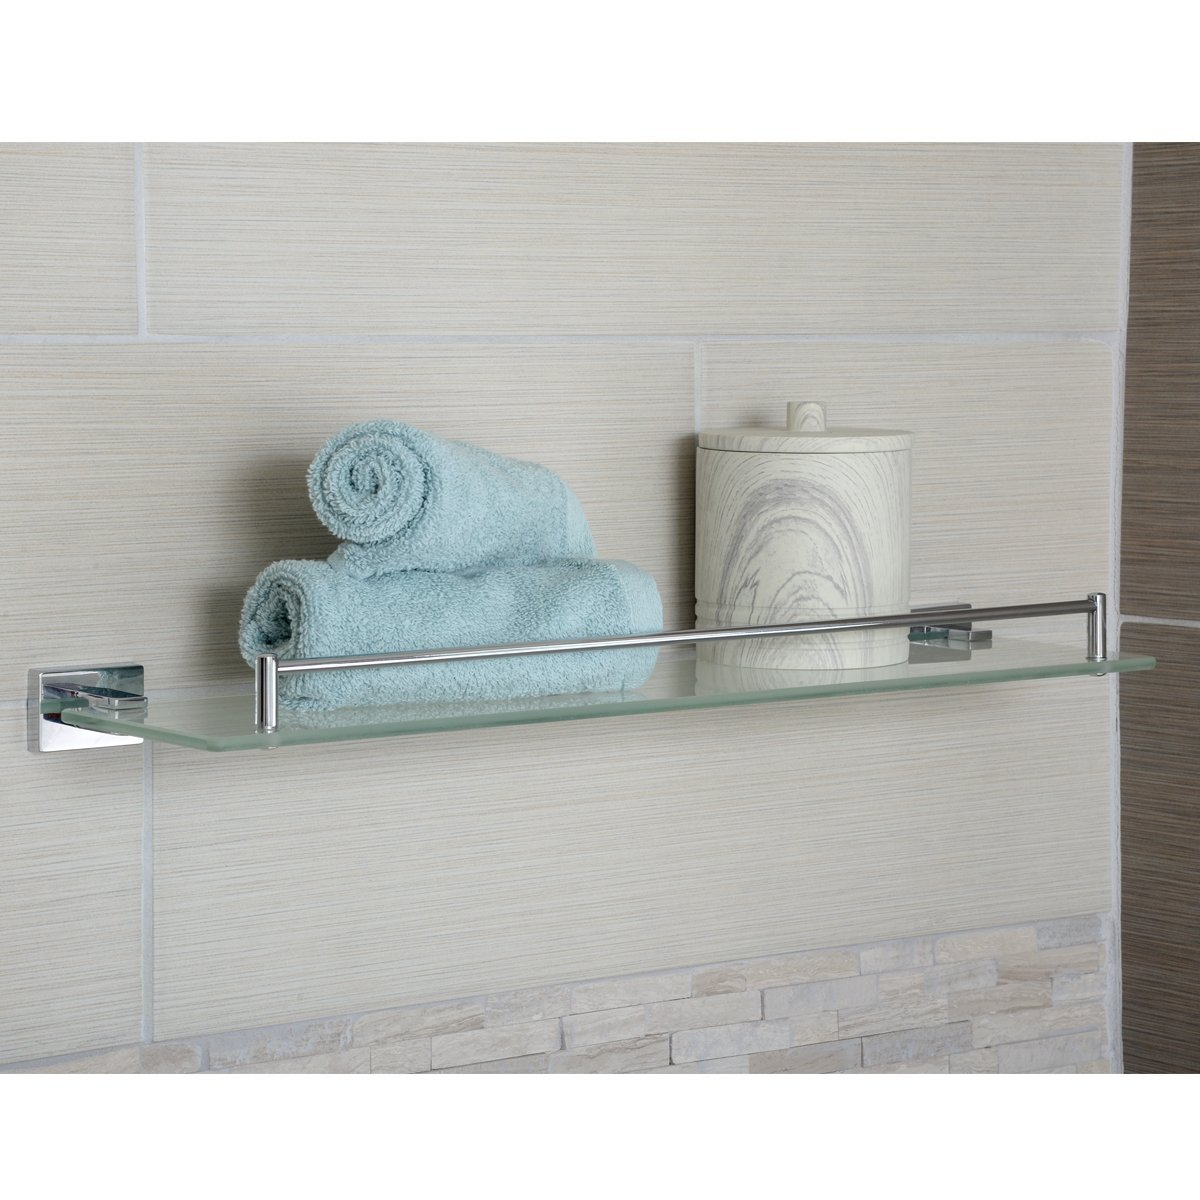 AmazonBasics Euro Glass Vanity Shelf - Polished Chrome, 20-Inch ...